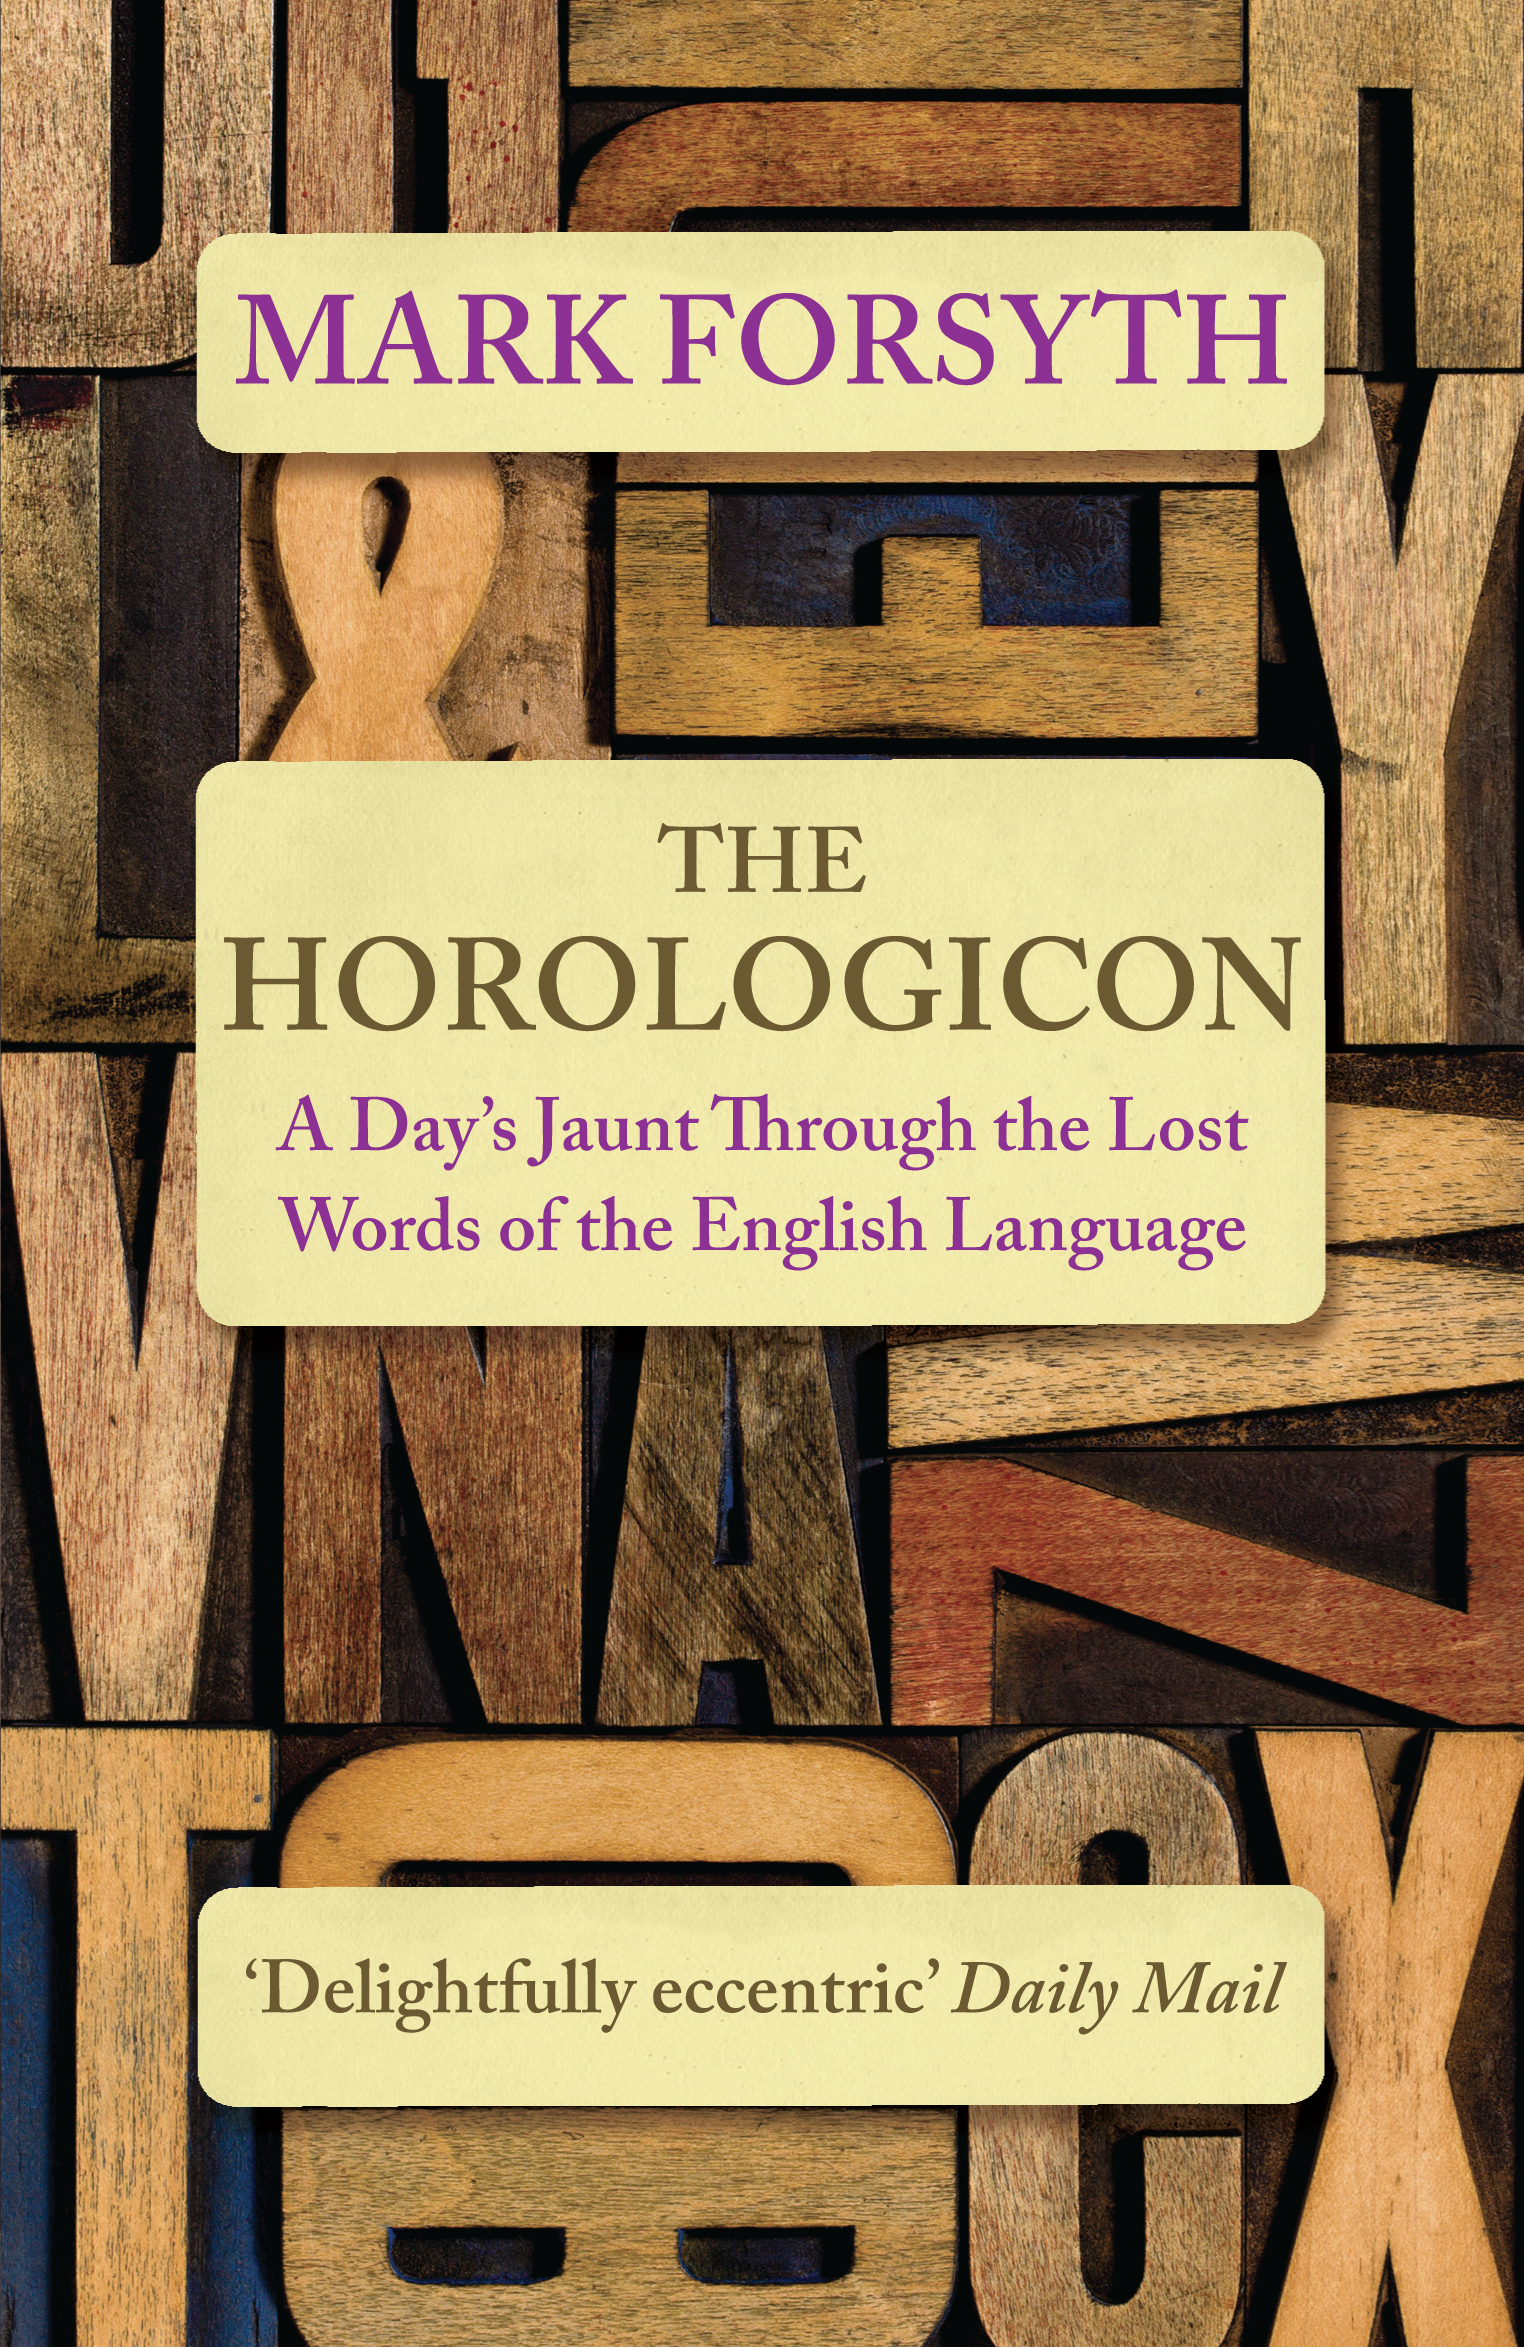 The Horologicon by Mark Forsyth, ISBN: 9781785781711